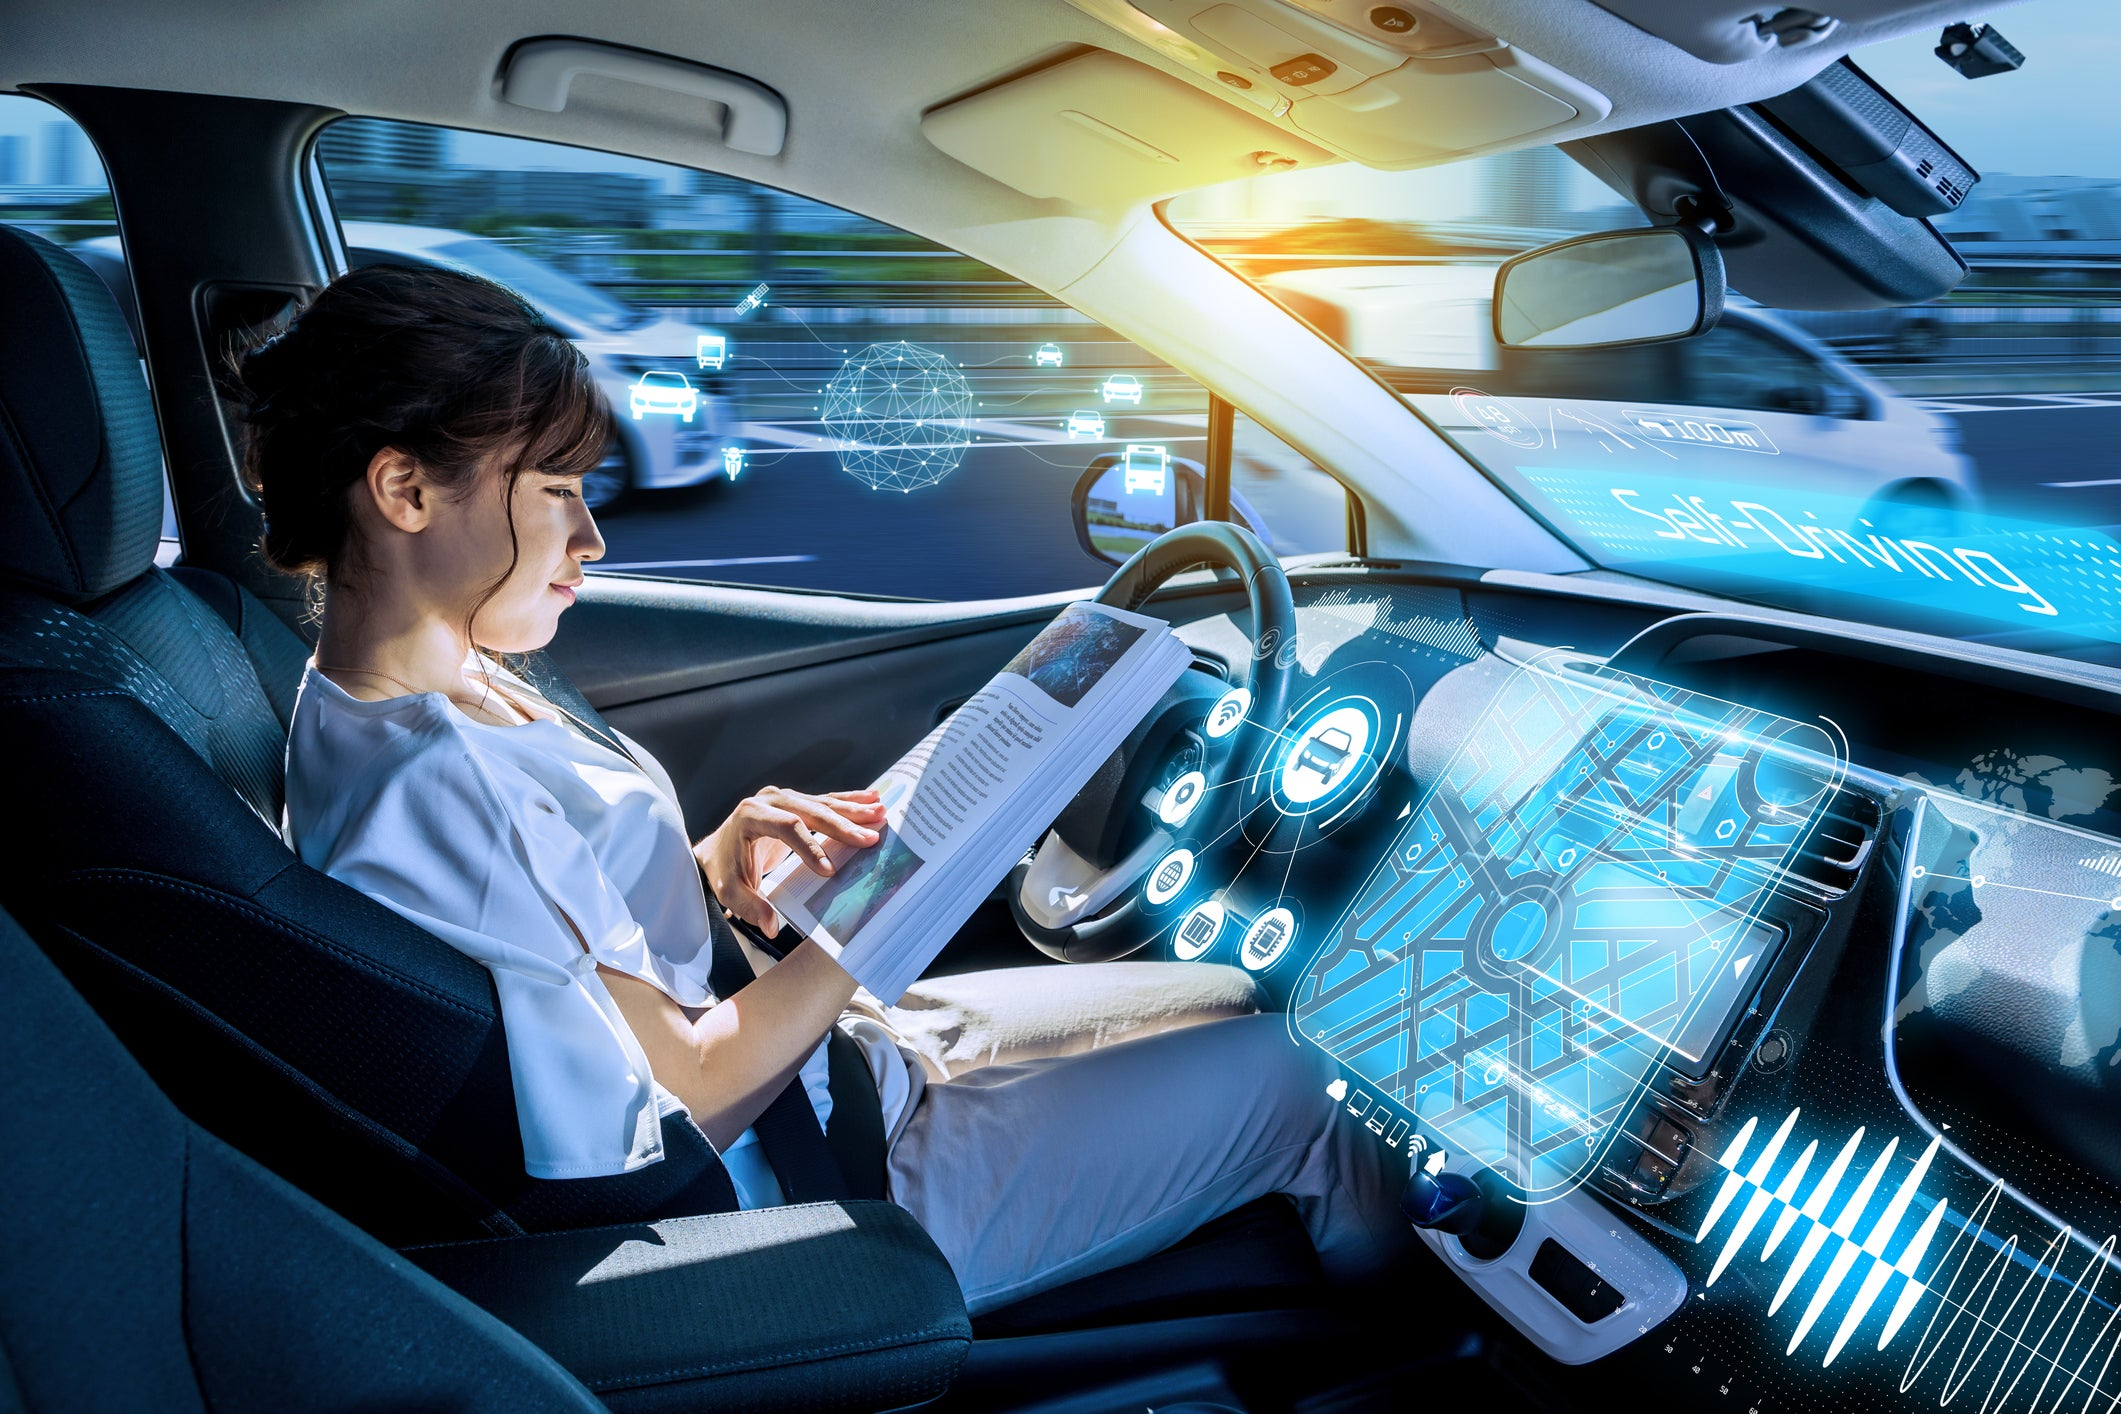 A woman reads a book as she sits in a driverless car.